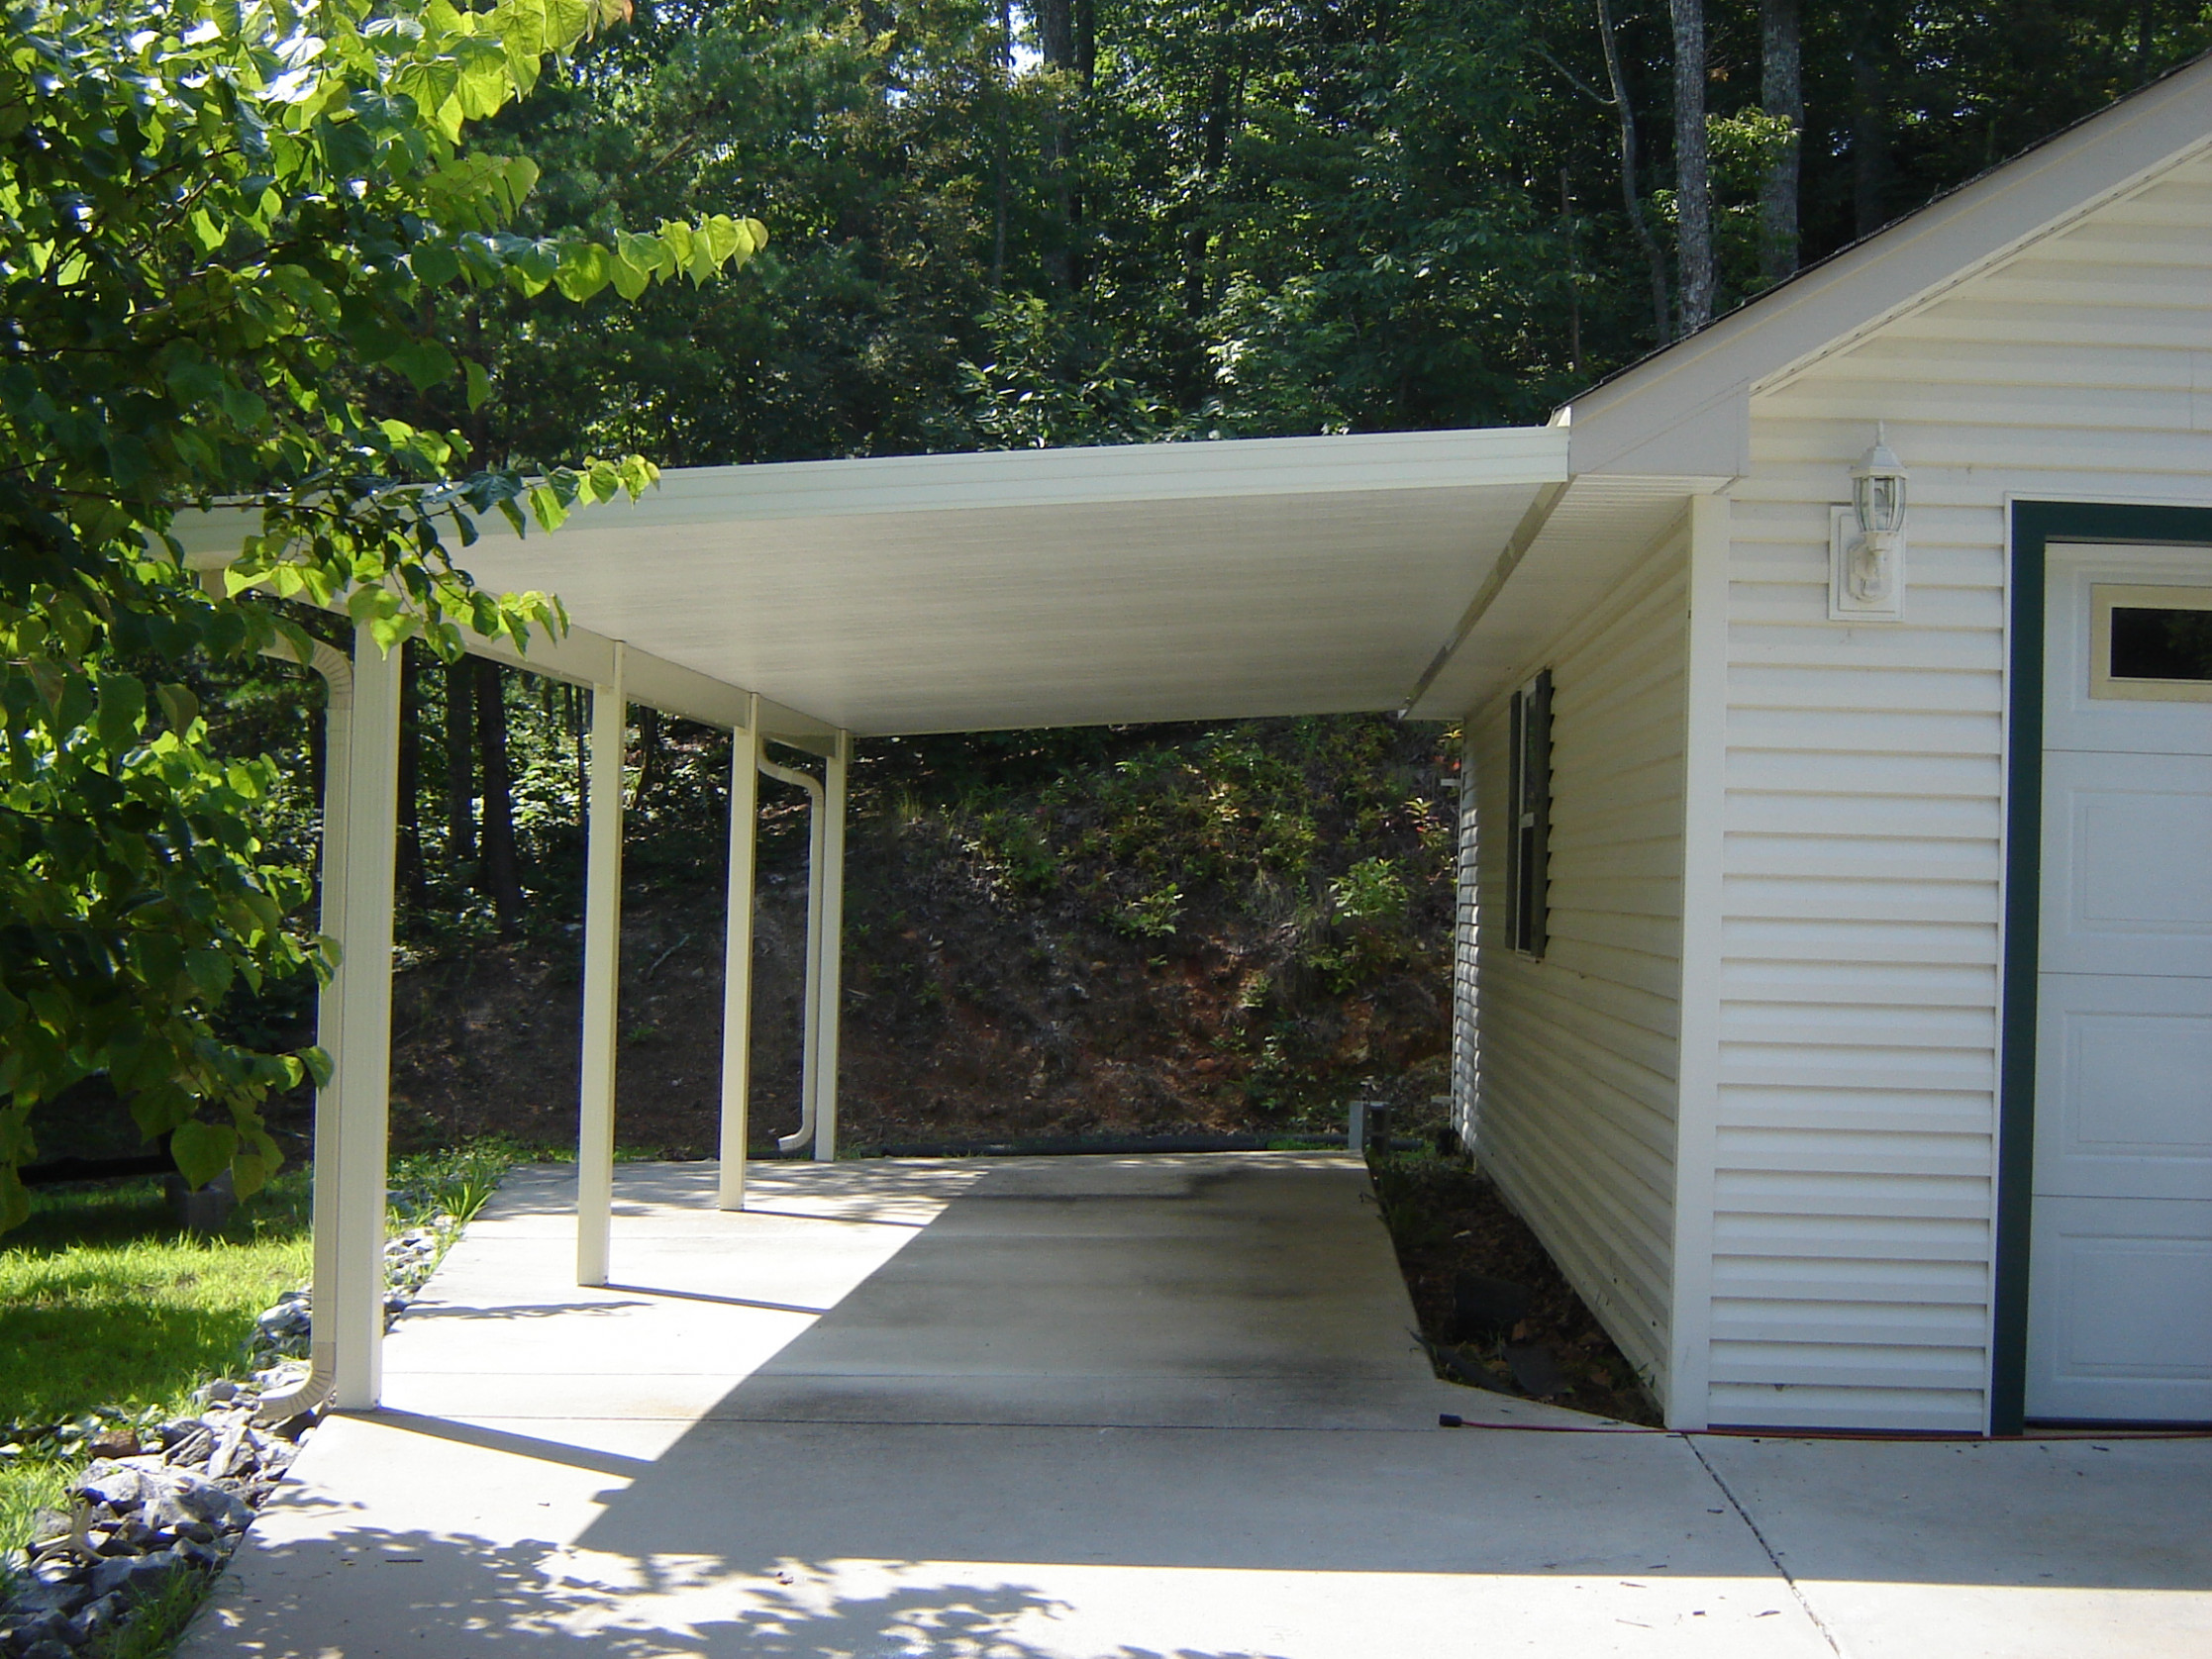 Carports & Patios, A Great Expansion To Your Home How To Add A Carport To Your Garage